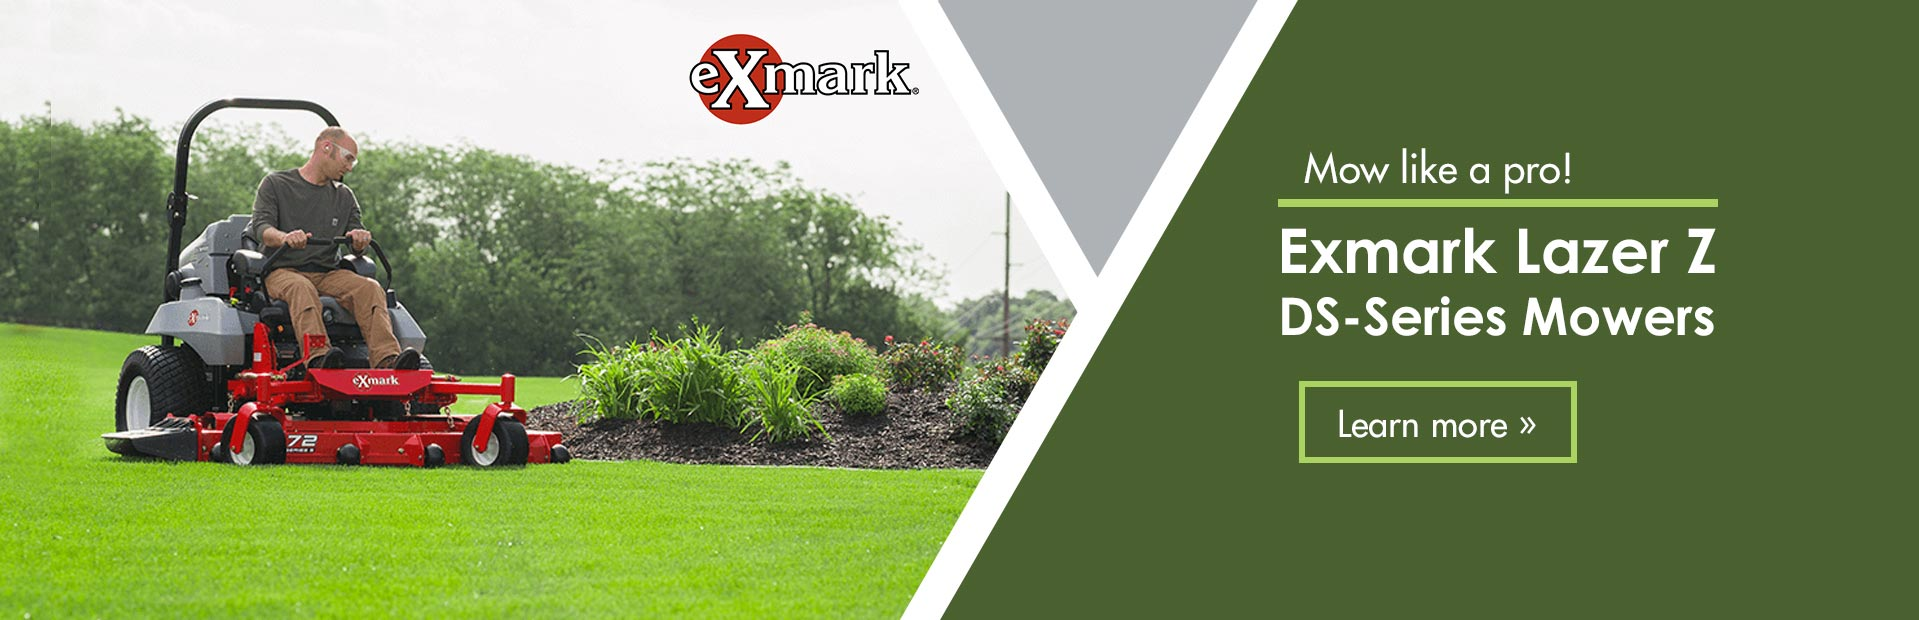 Exmark Lazer Z DS-Series Mowers: Click here to view the models.